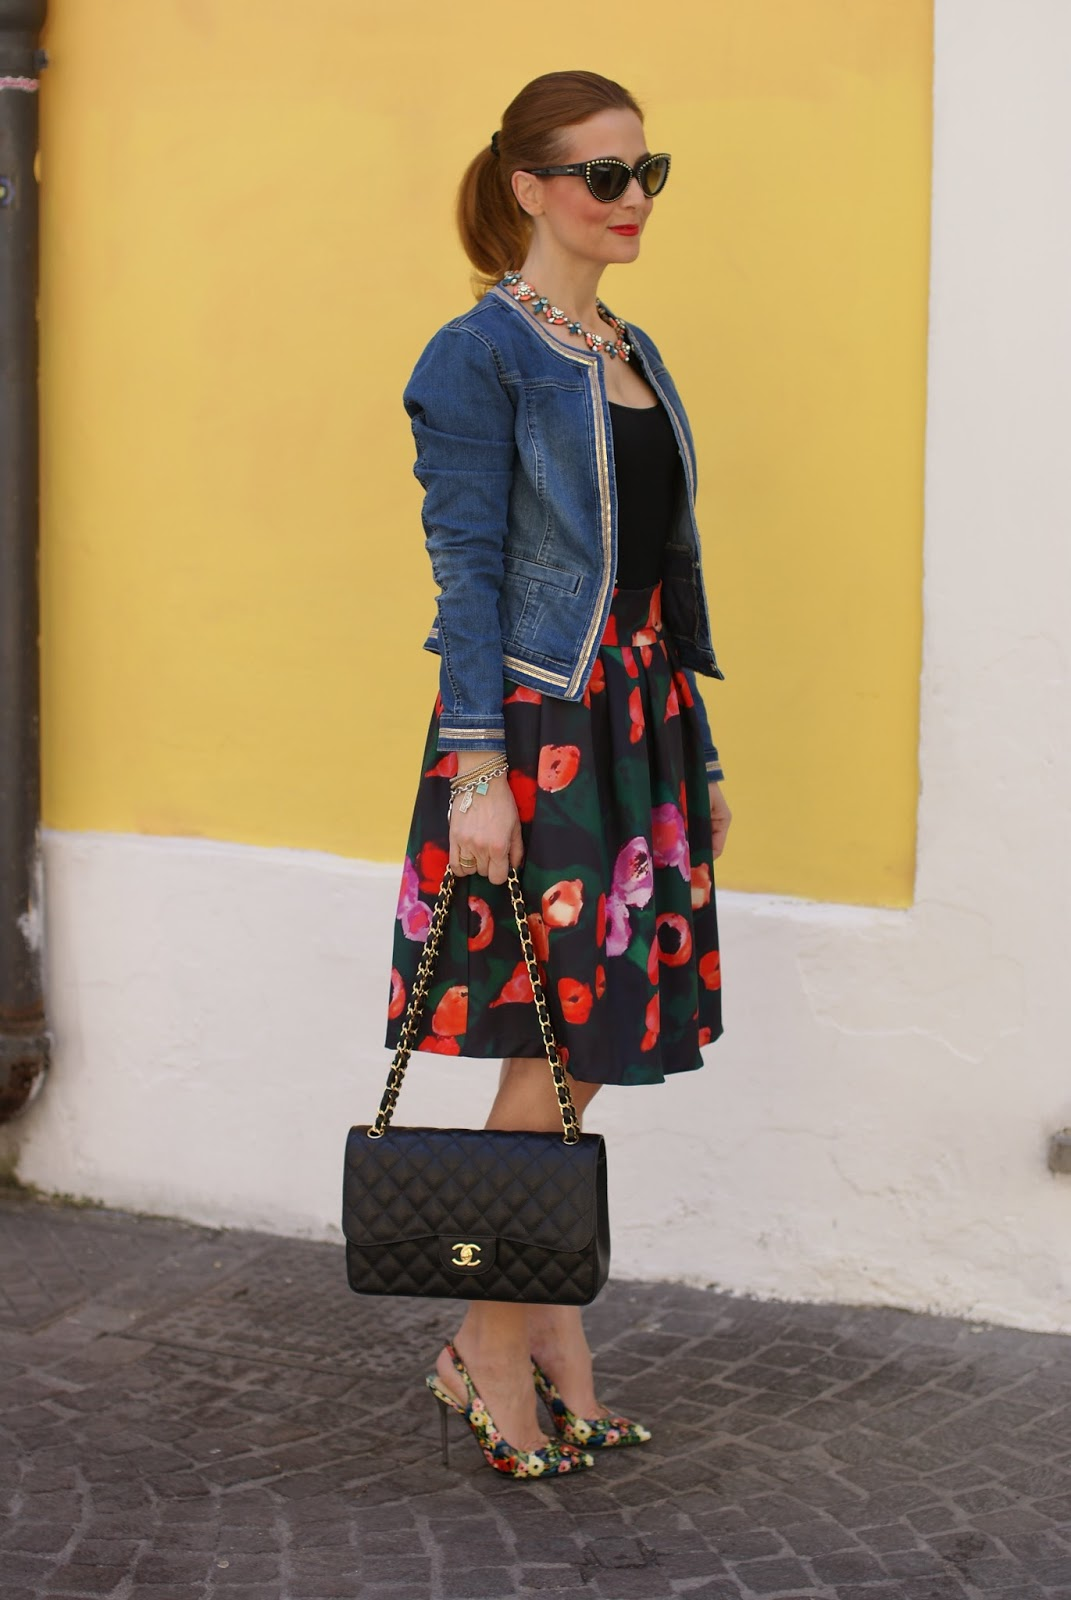 Chanel bag and foral pumps on Fashion and Cookies fashion blog, fashion blogger style